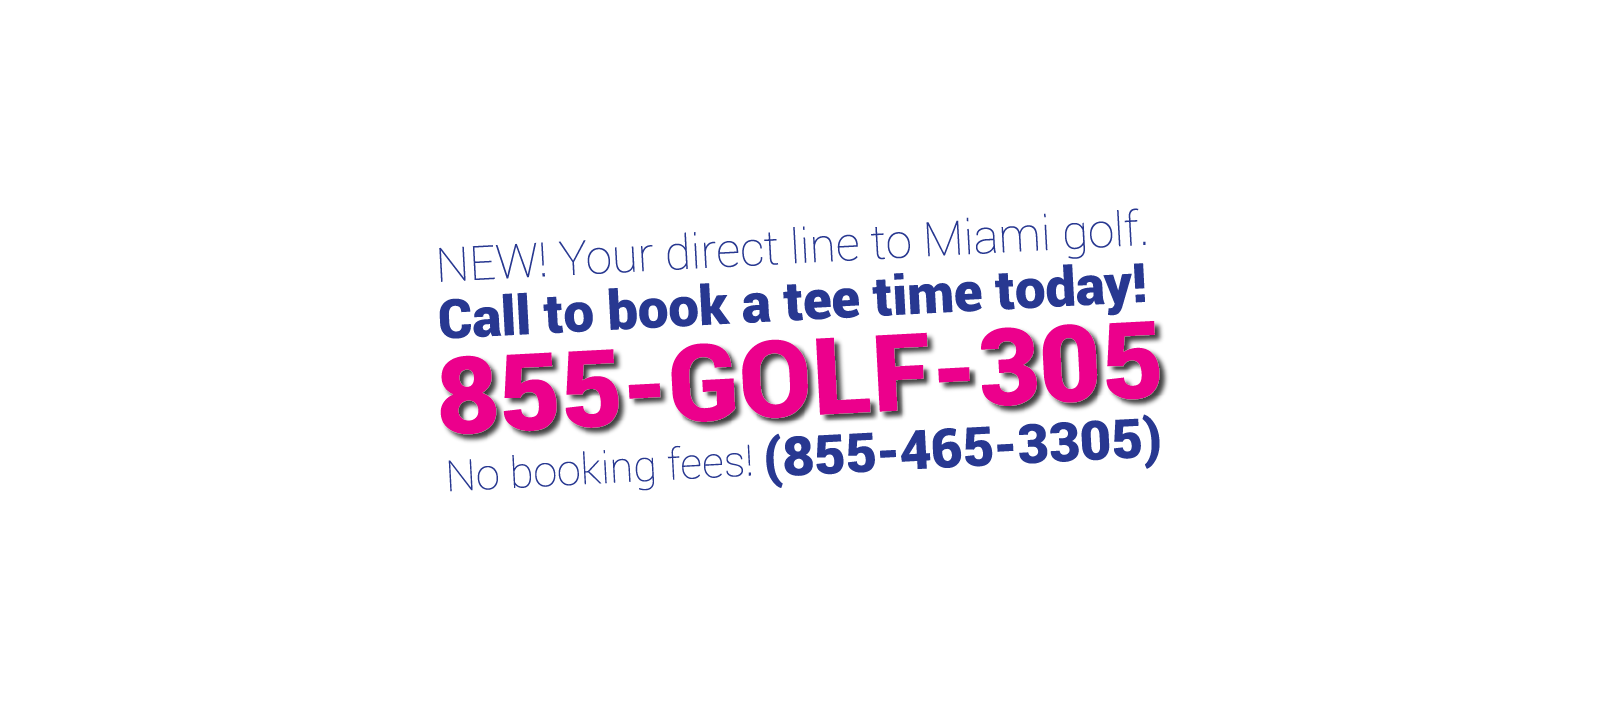 Call 855-GOLF-305 for tee times